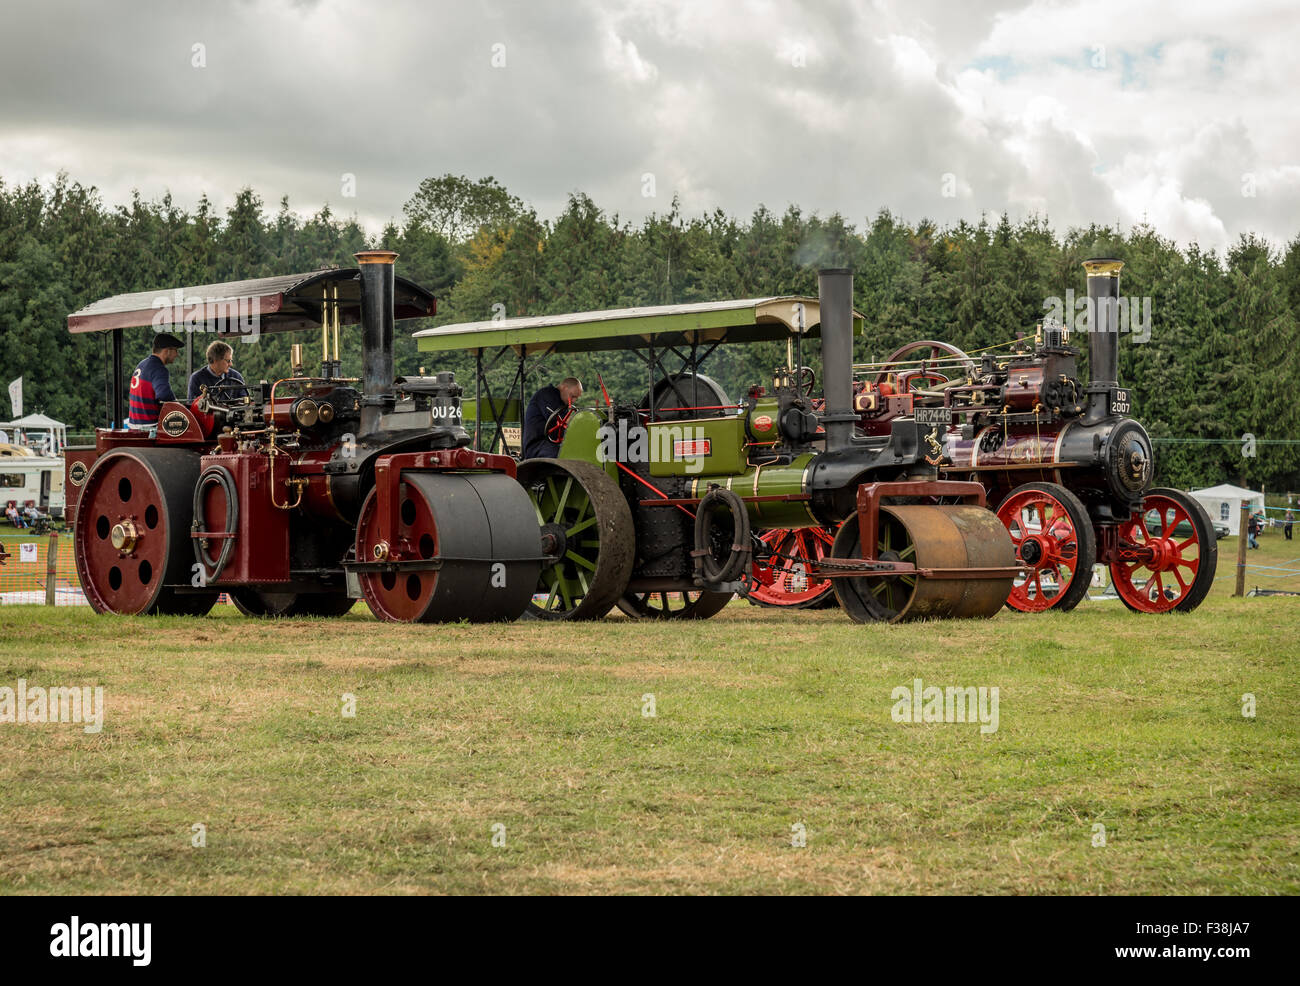 Vintage Steam Rollers and Traction Locomotive - Stock Image